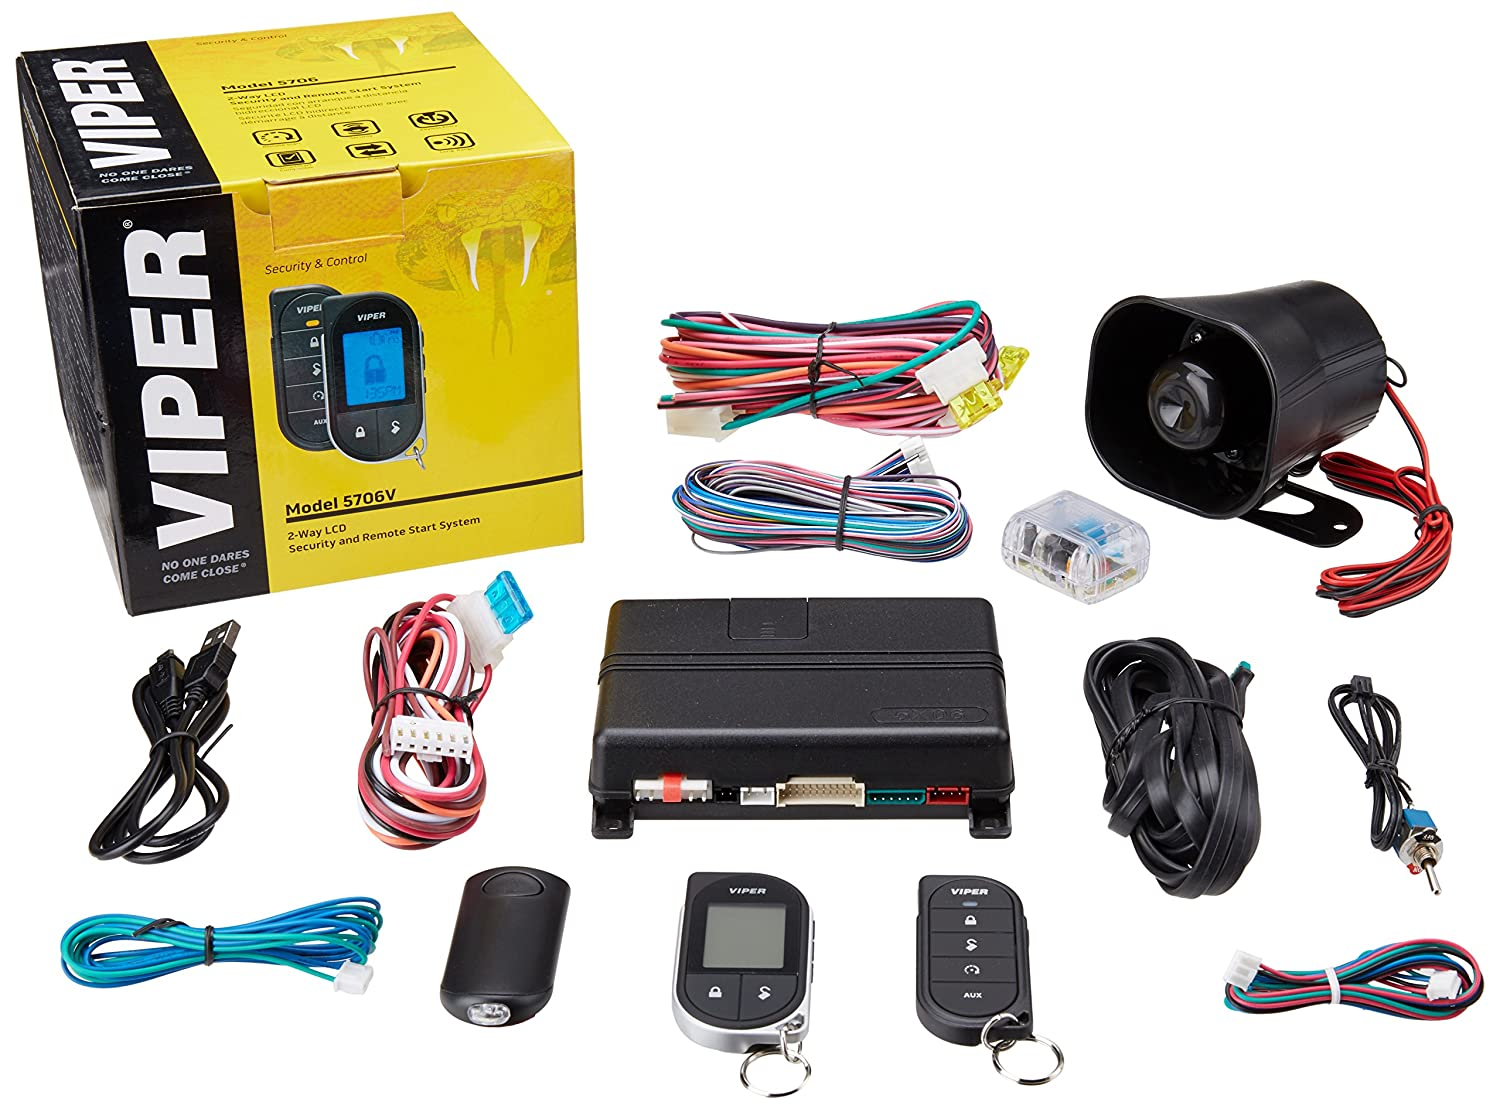 Amazon viper 5706v 2 way car security with remote start system amazon viper 5706v 2 way car security with remote start system cell phones accessories publicscrutiny